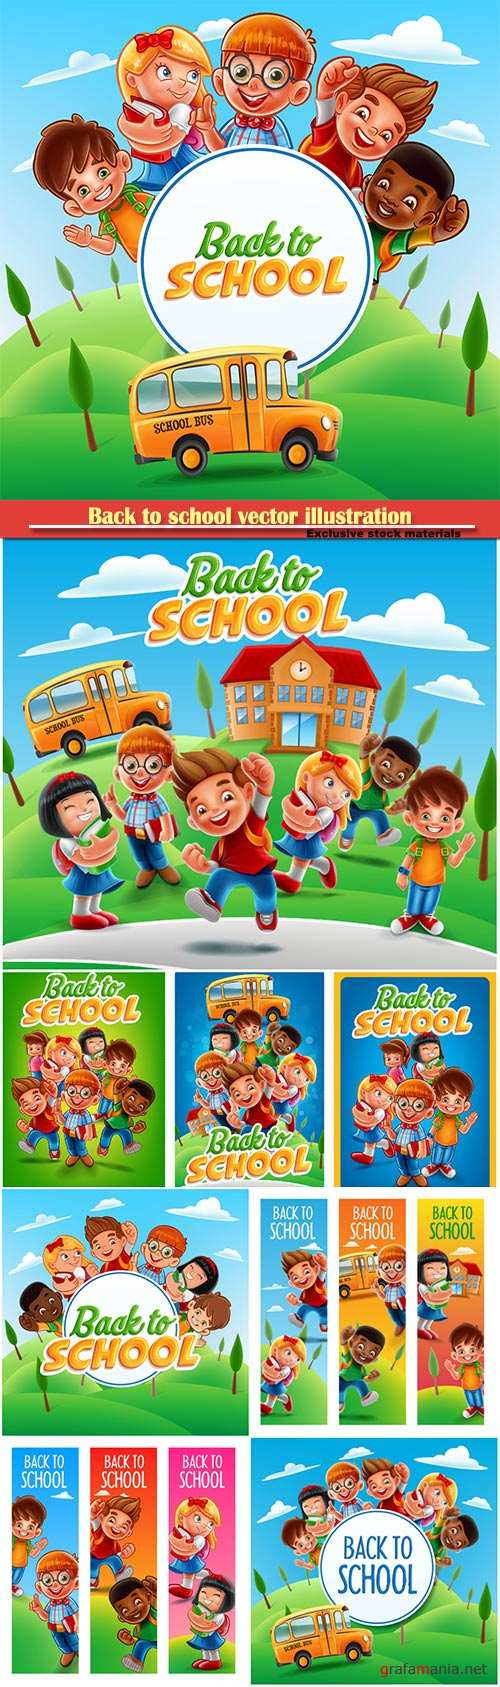 Back to school vector illustration, funny kids with school books